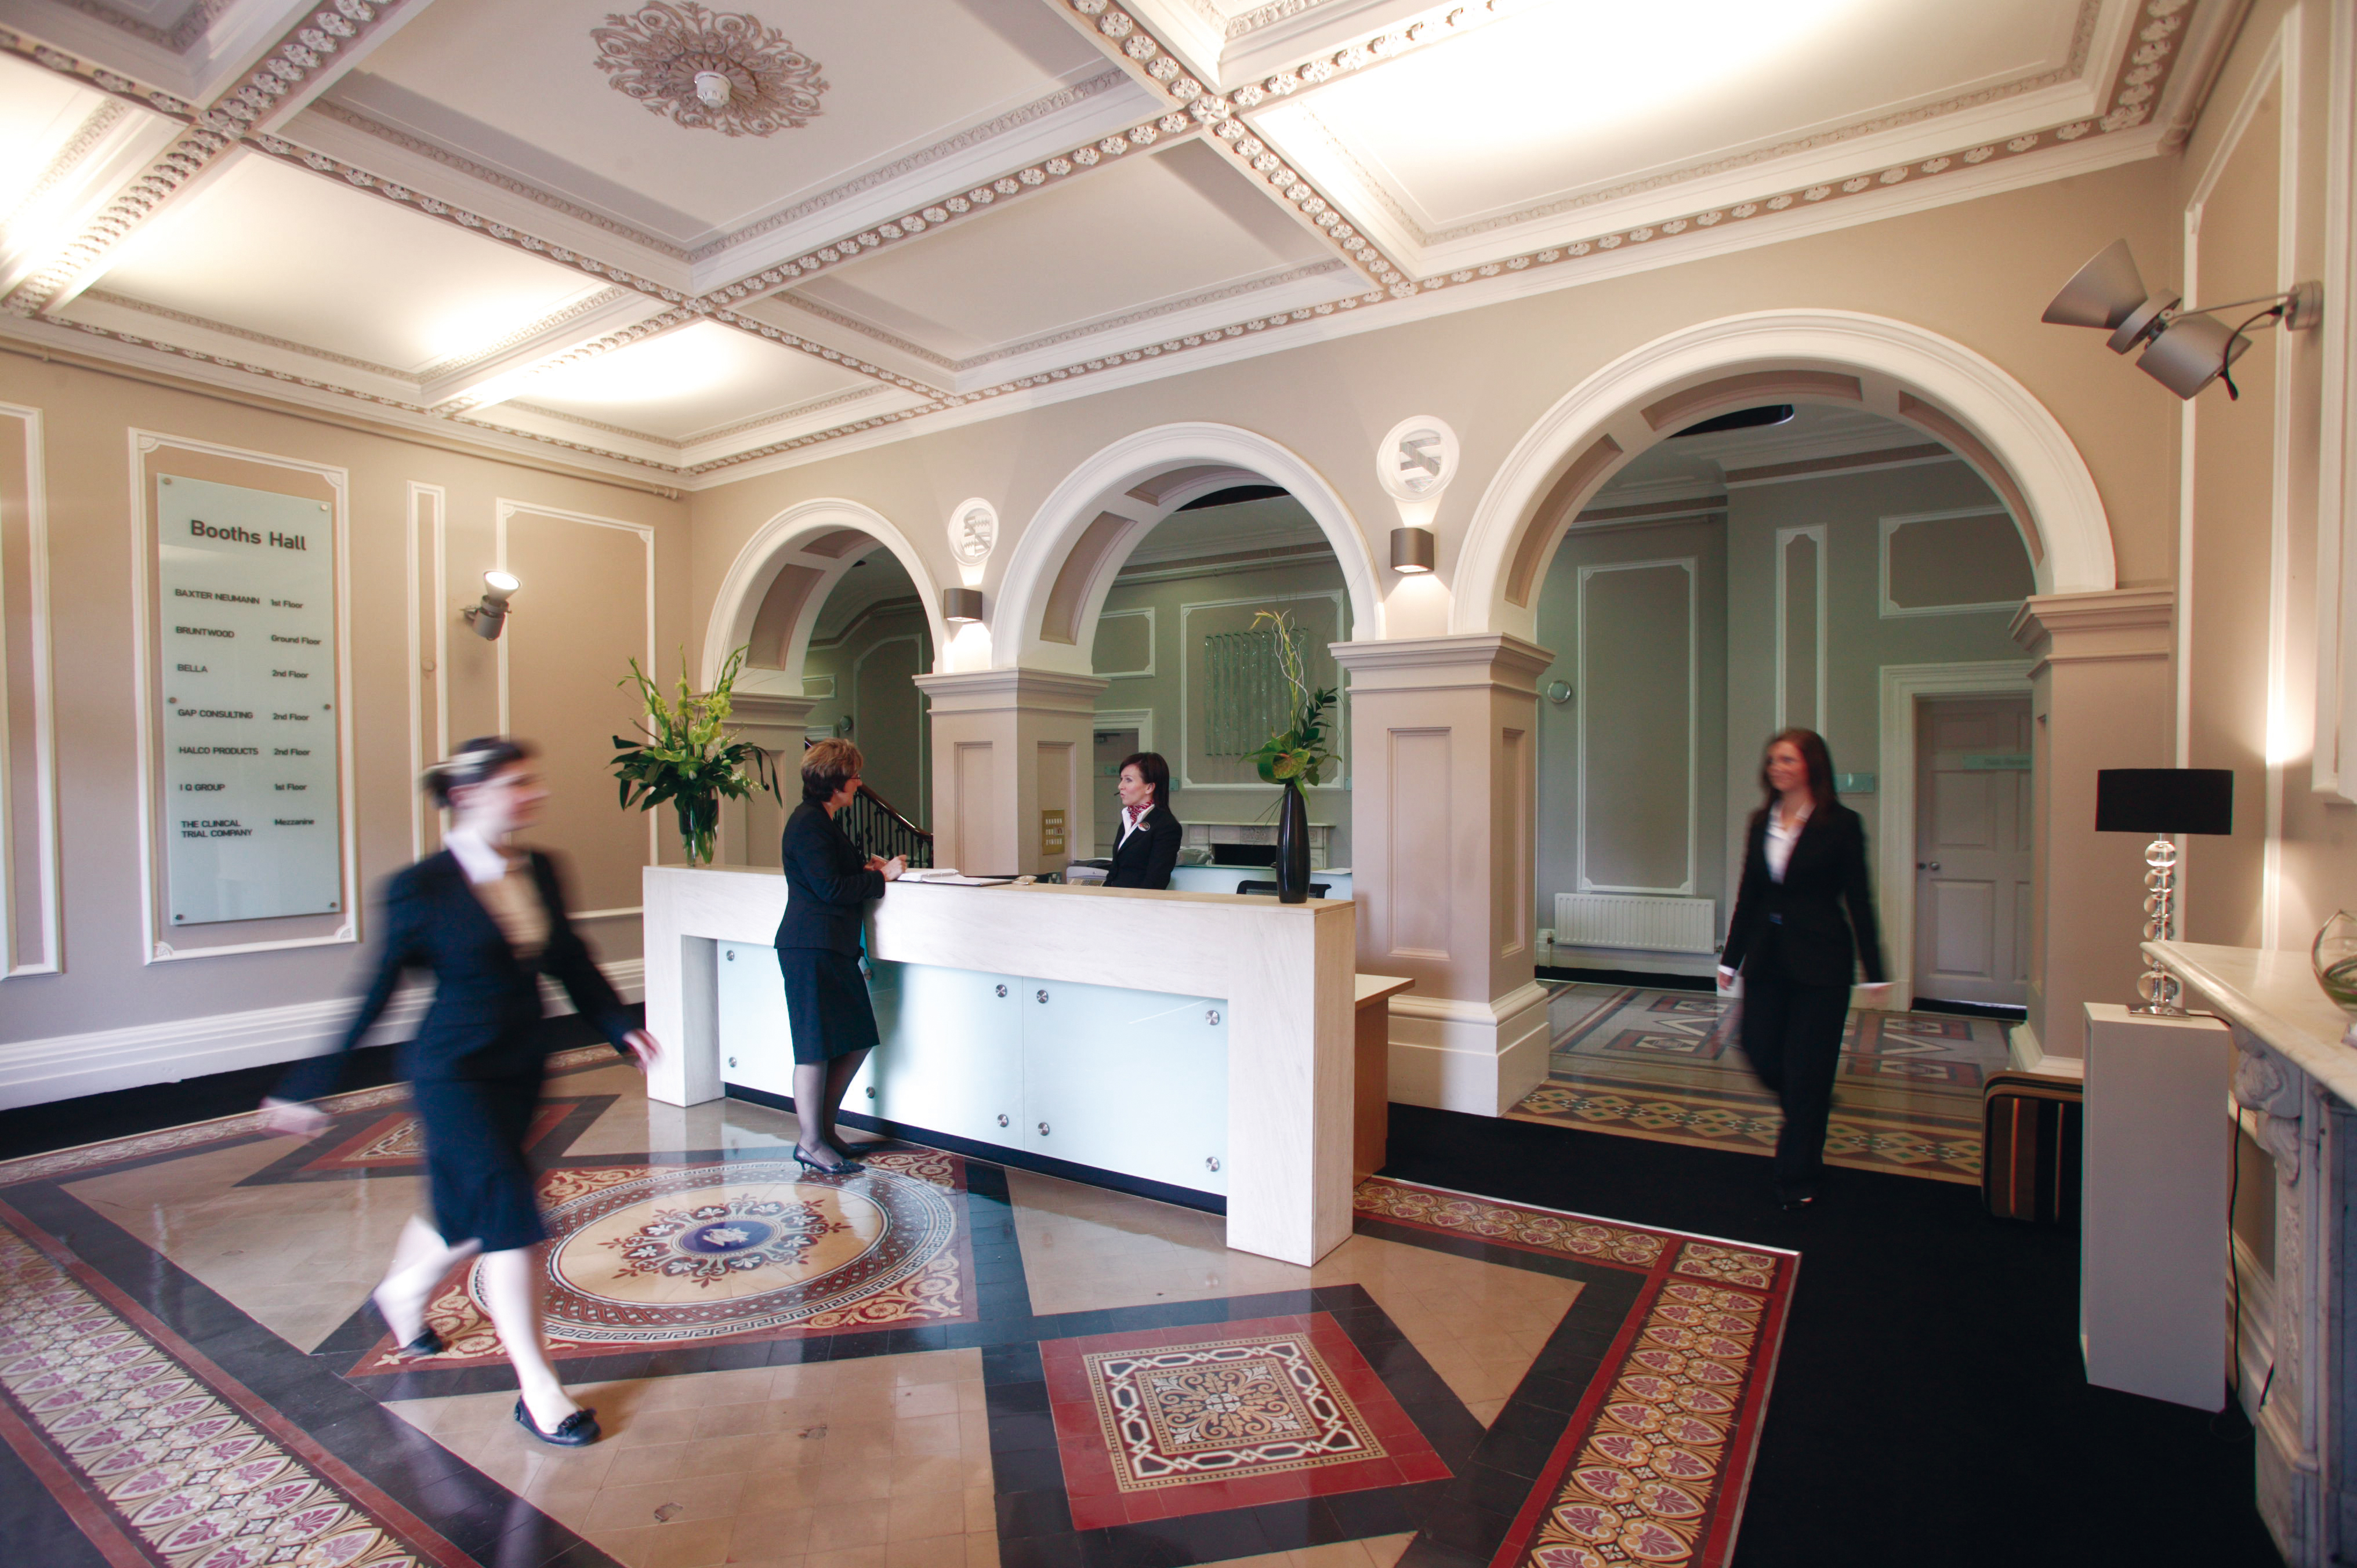 Booths Hall Reception